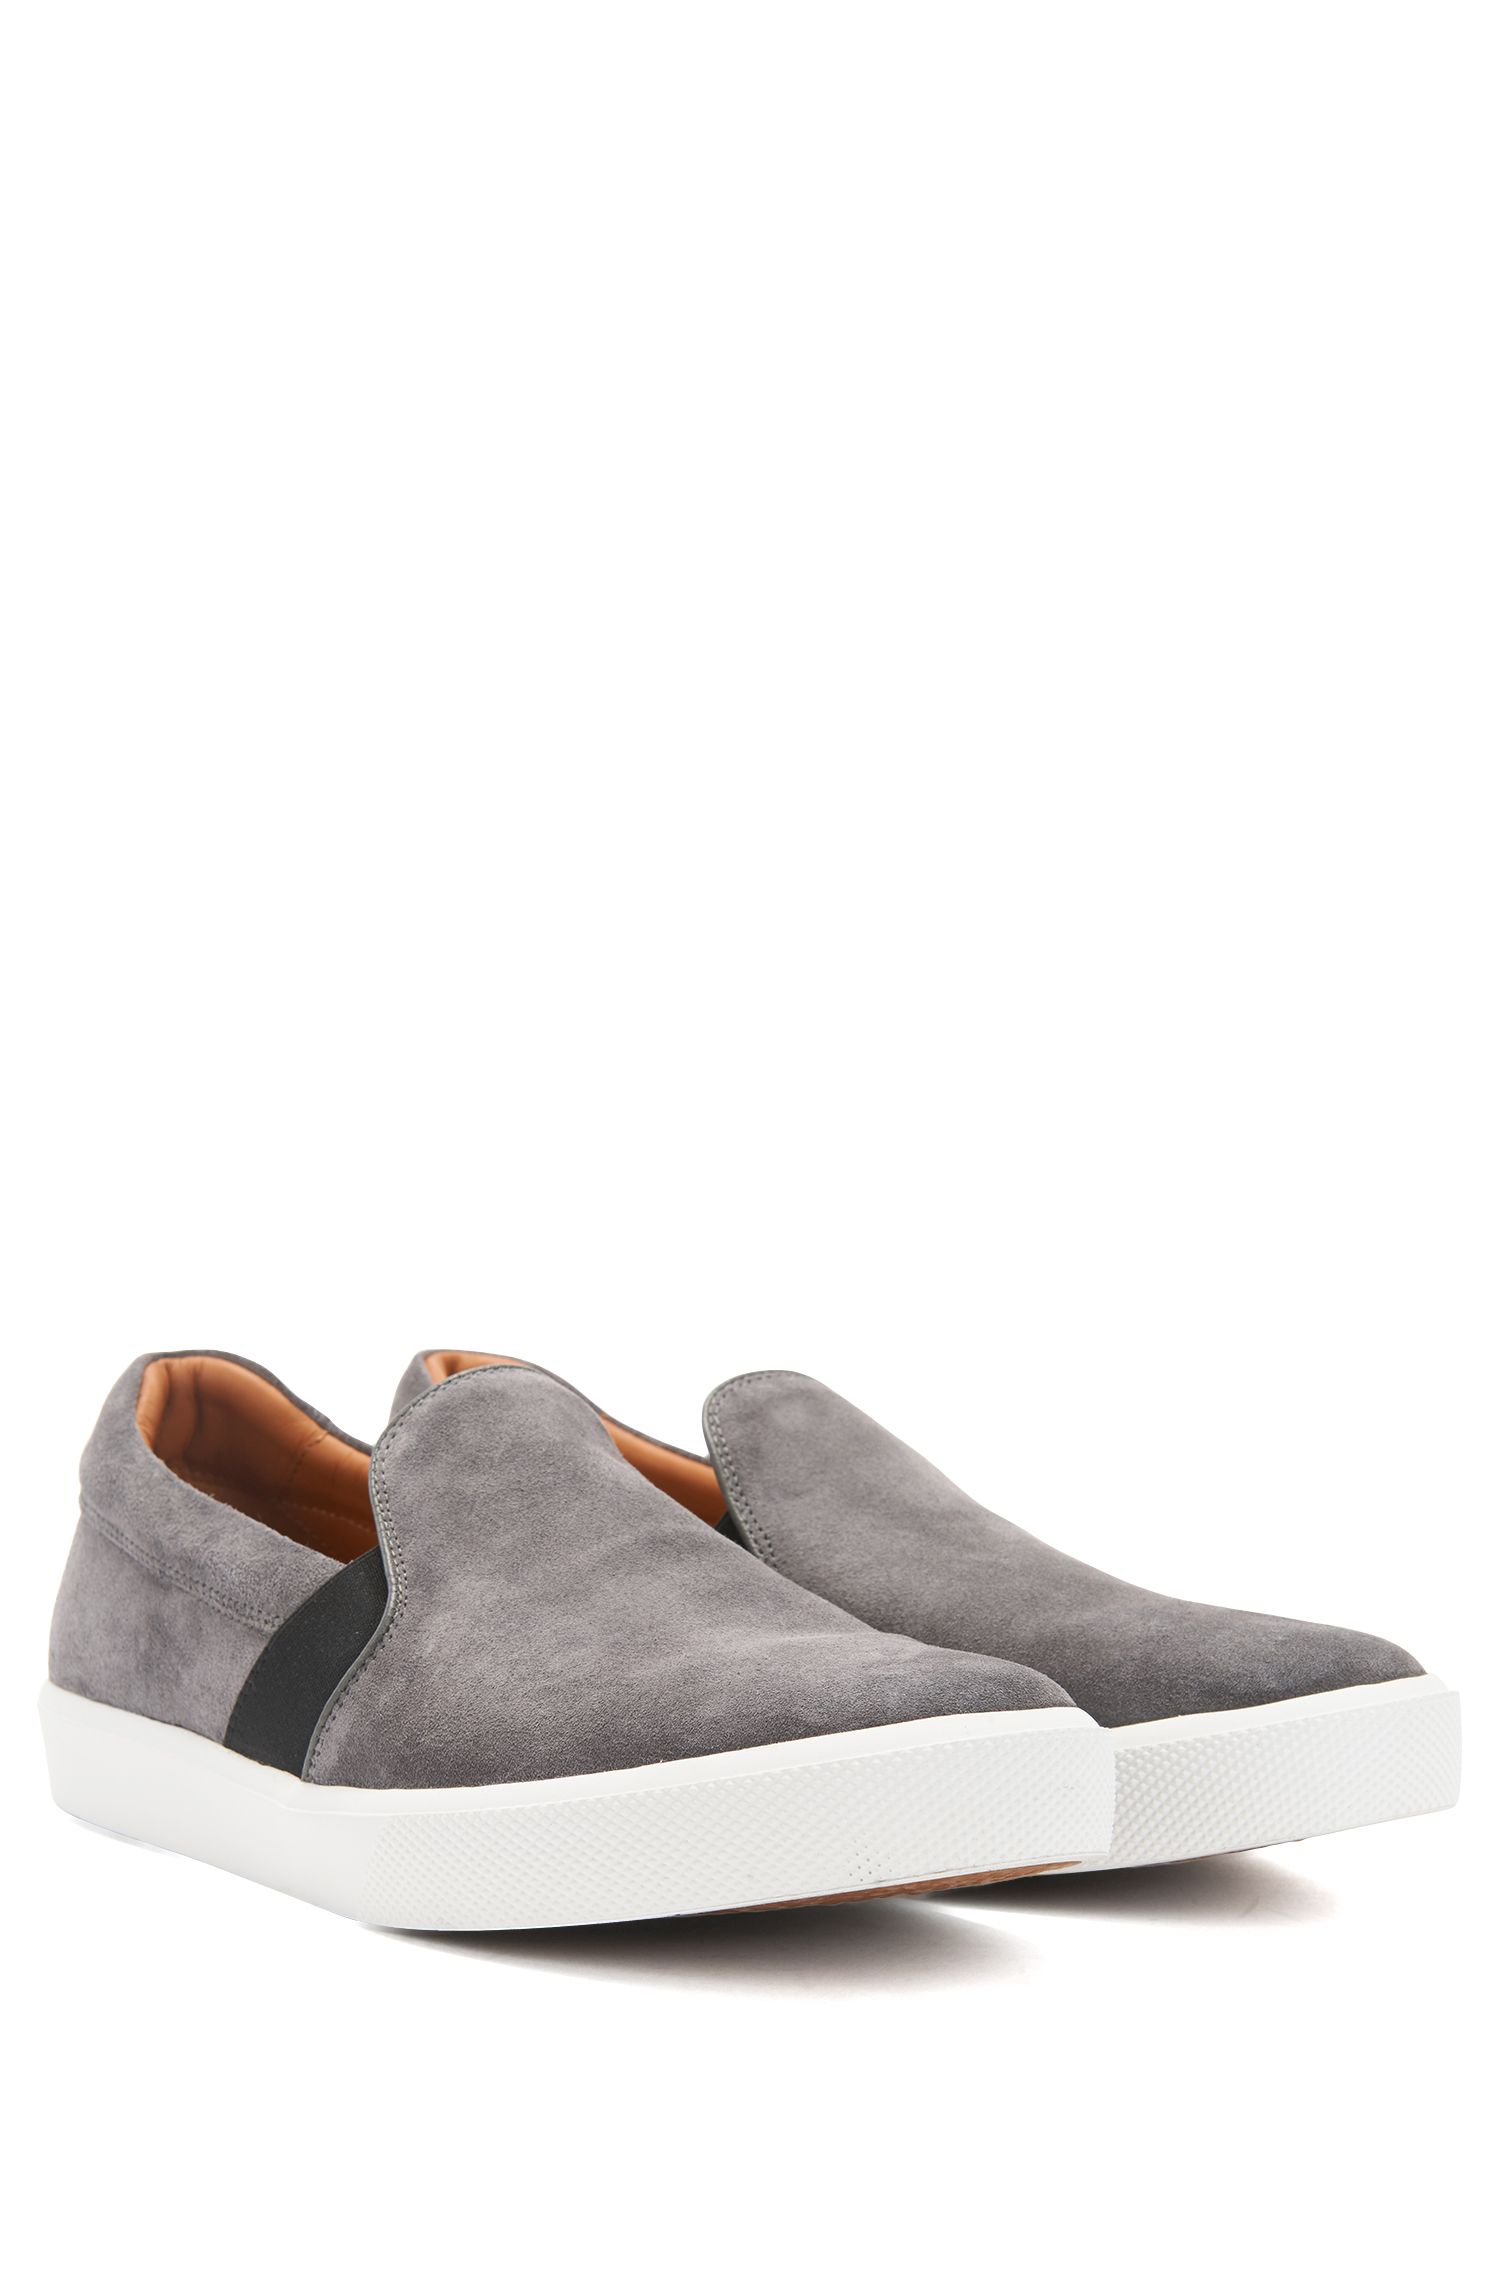 Slip-on trainers in Italian suede